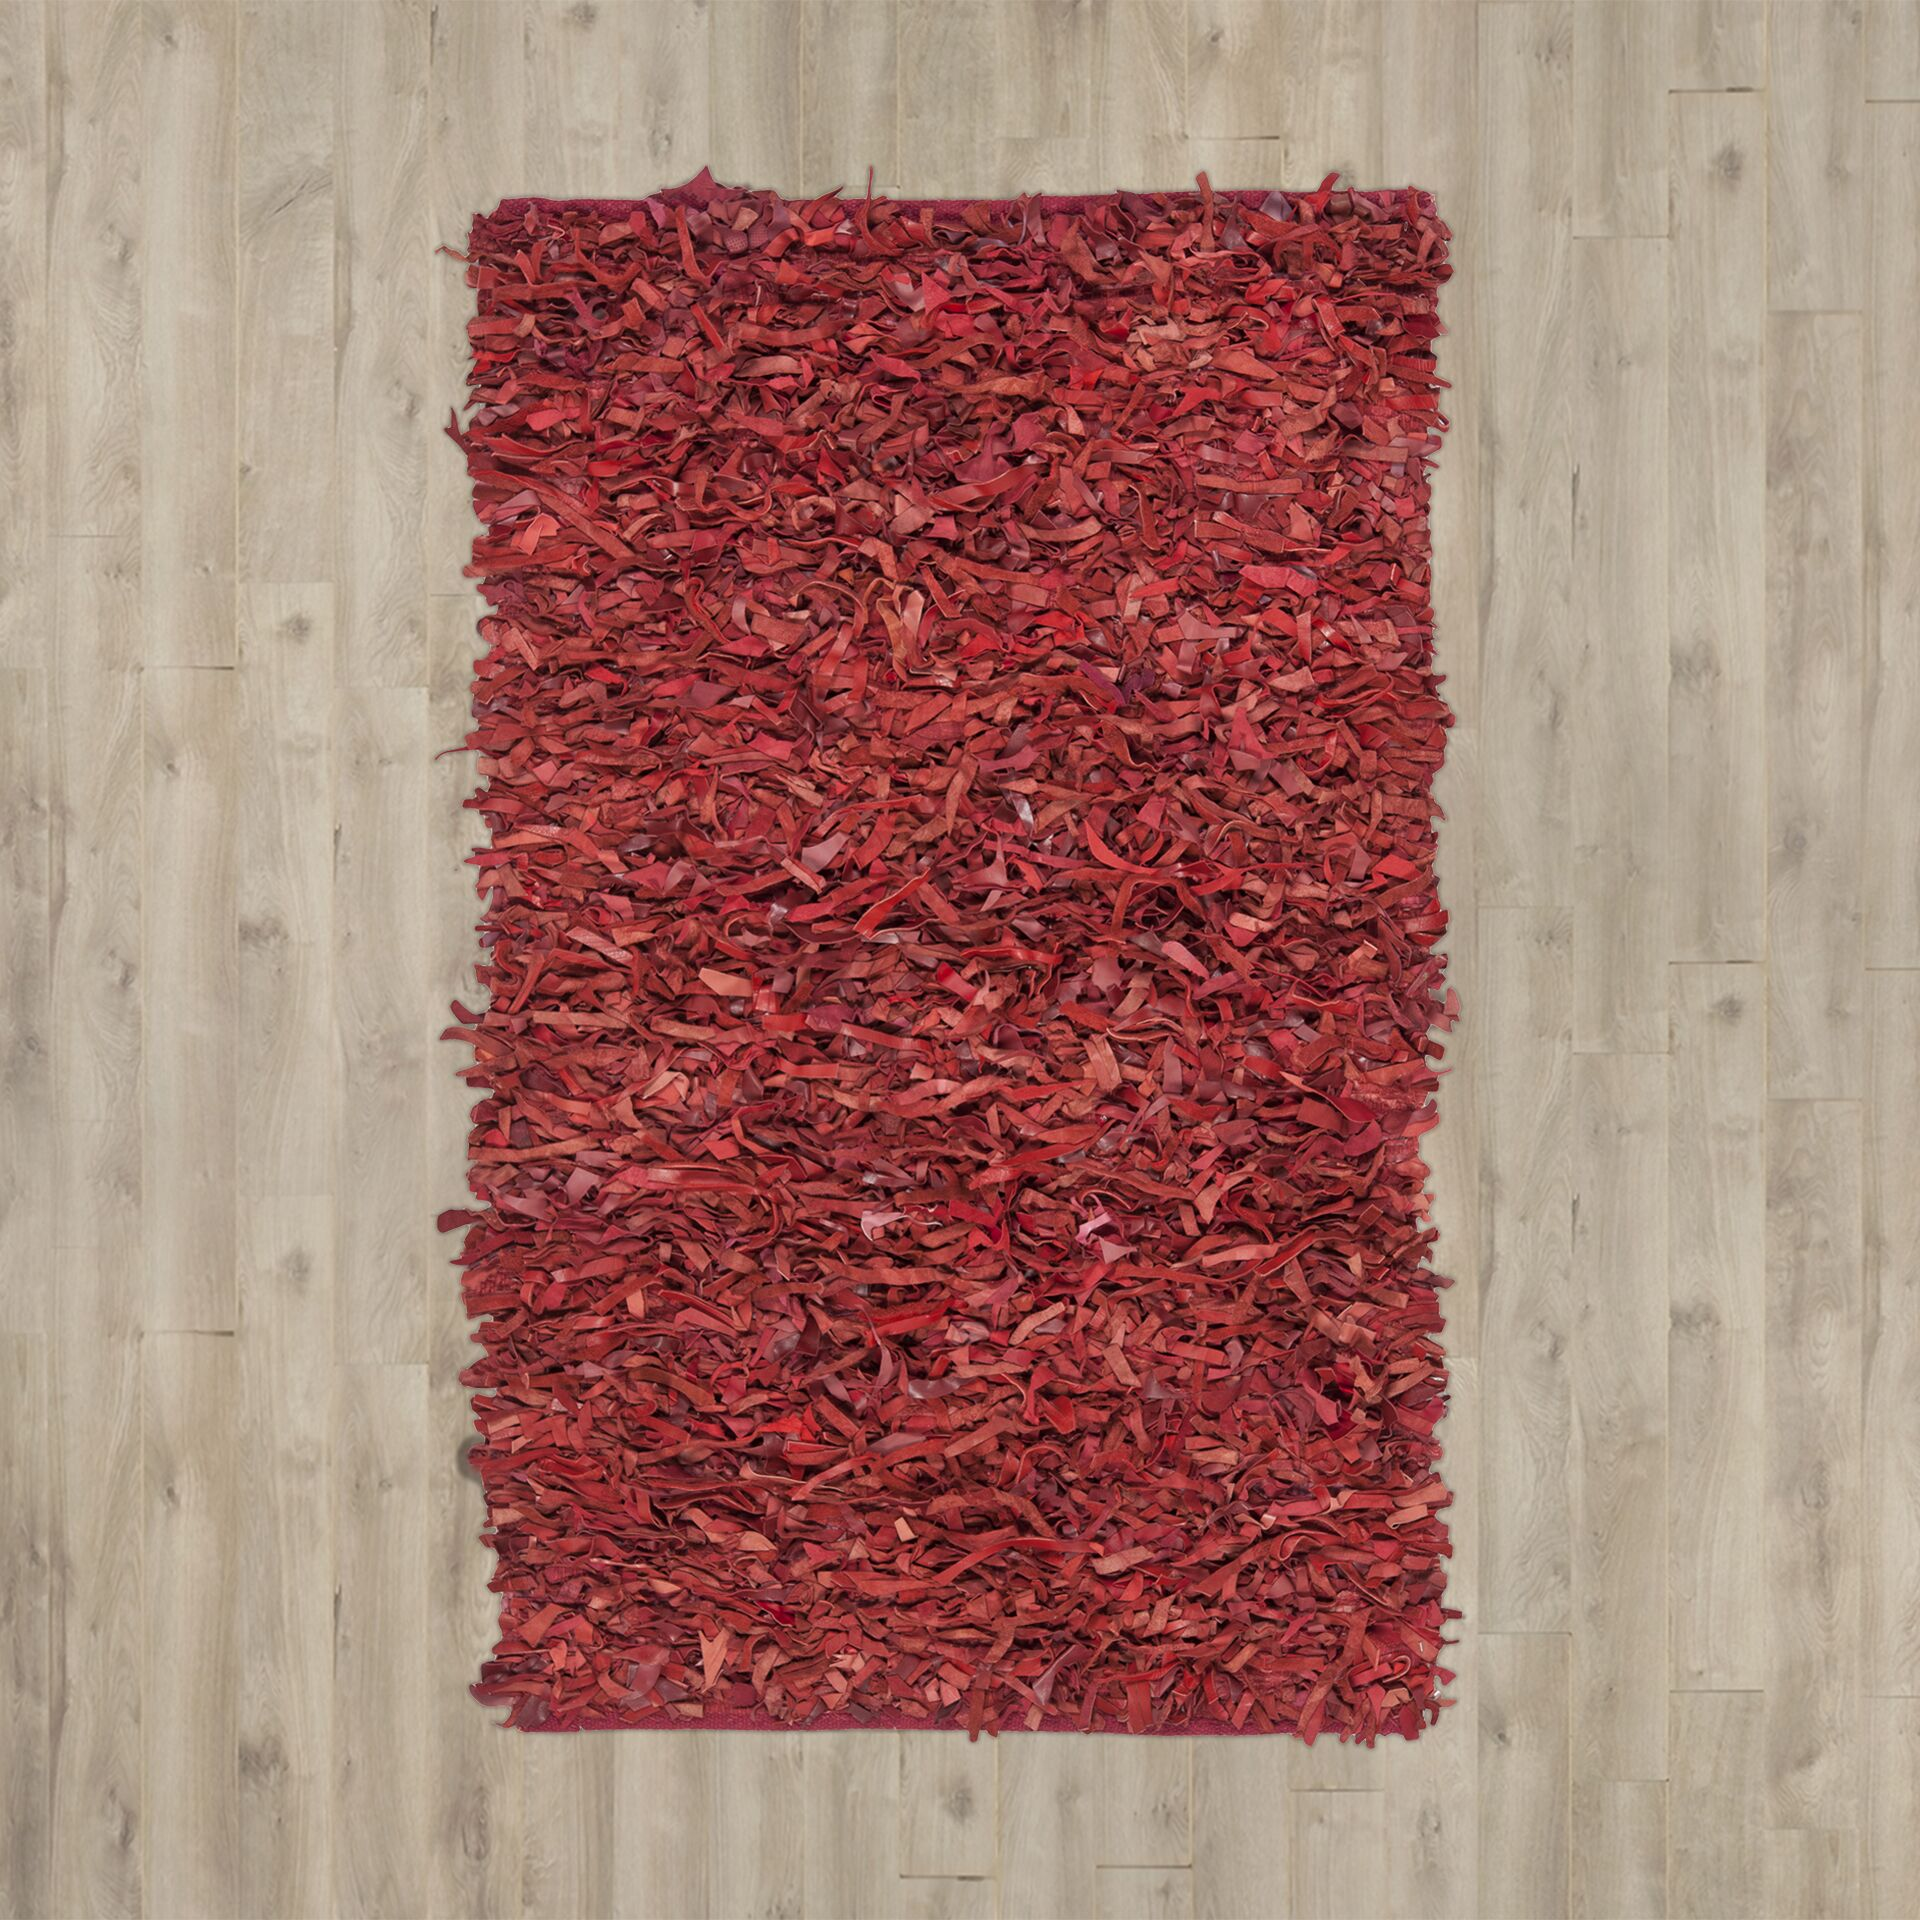 Schaefer Hand-Knotted Red Shag Area Rug Rug Size: Rectangle 6' x 9'